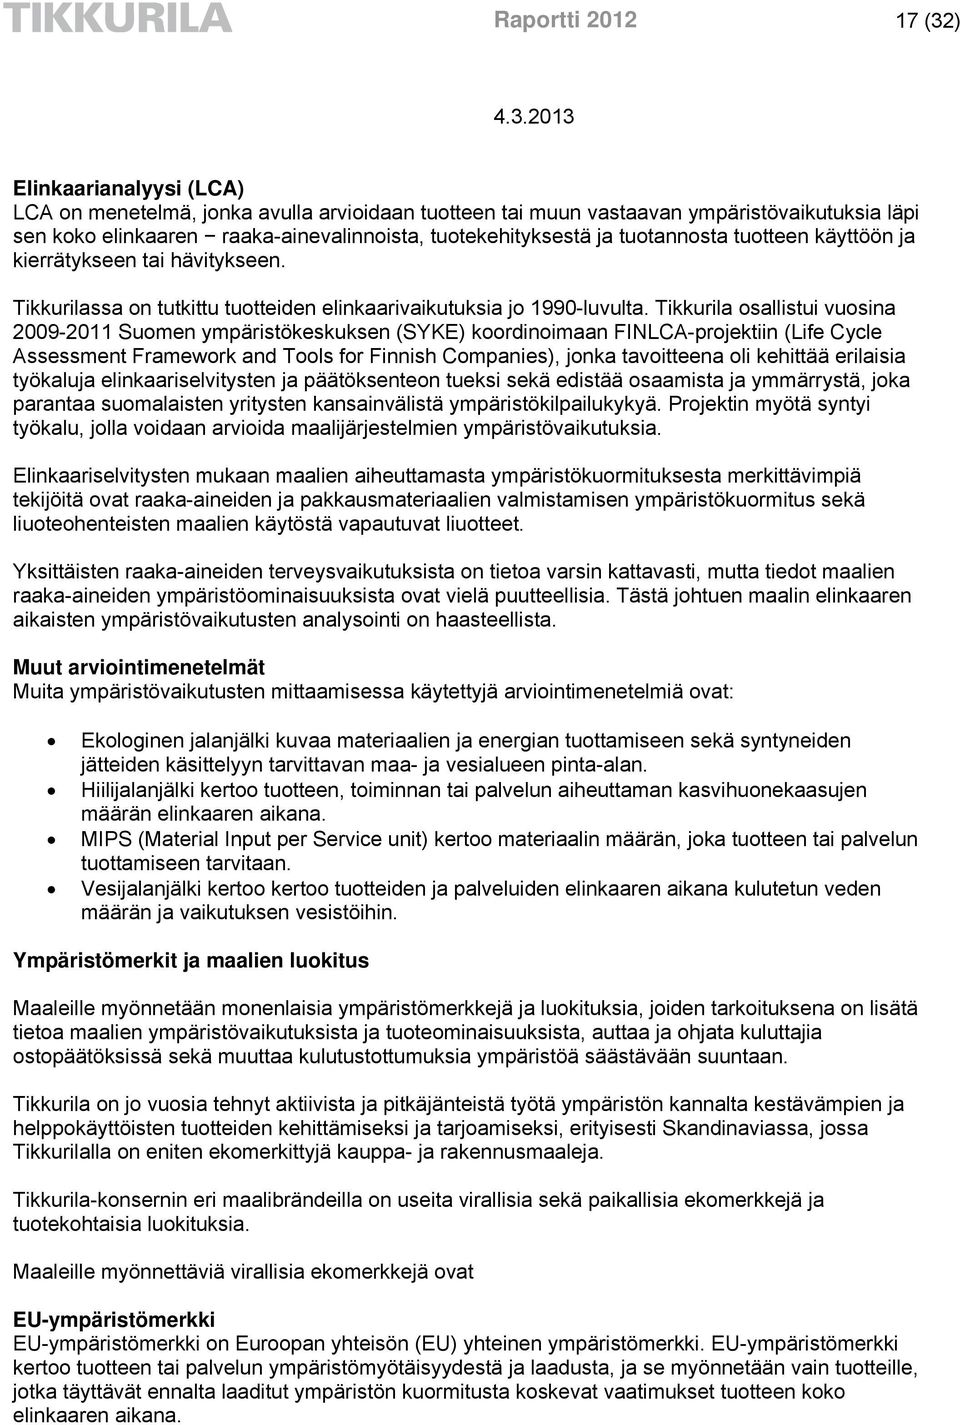 Tikkurila osallistui vuosina 2009-2011 Suomen ympäristökeskuksen (SYKE) koordinoimaan FINLCA-projektiin (Life Cycle Assessment Framework and Tools for Finnish Companies), jonka tavoitteena oli